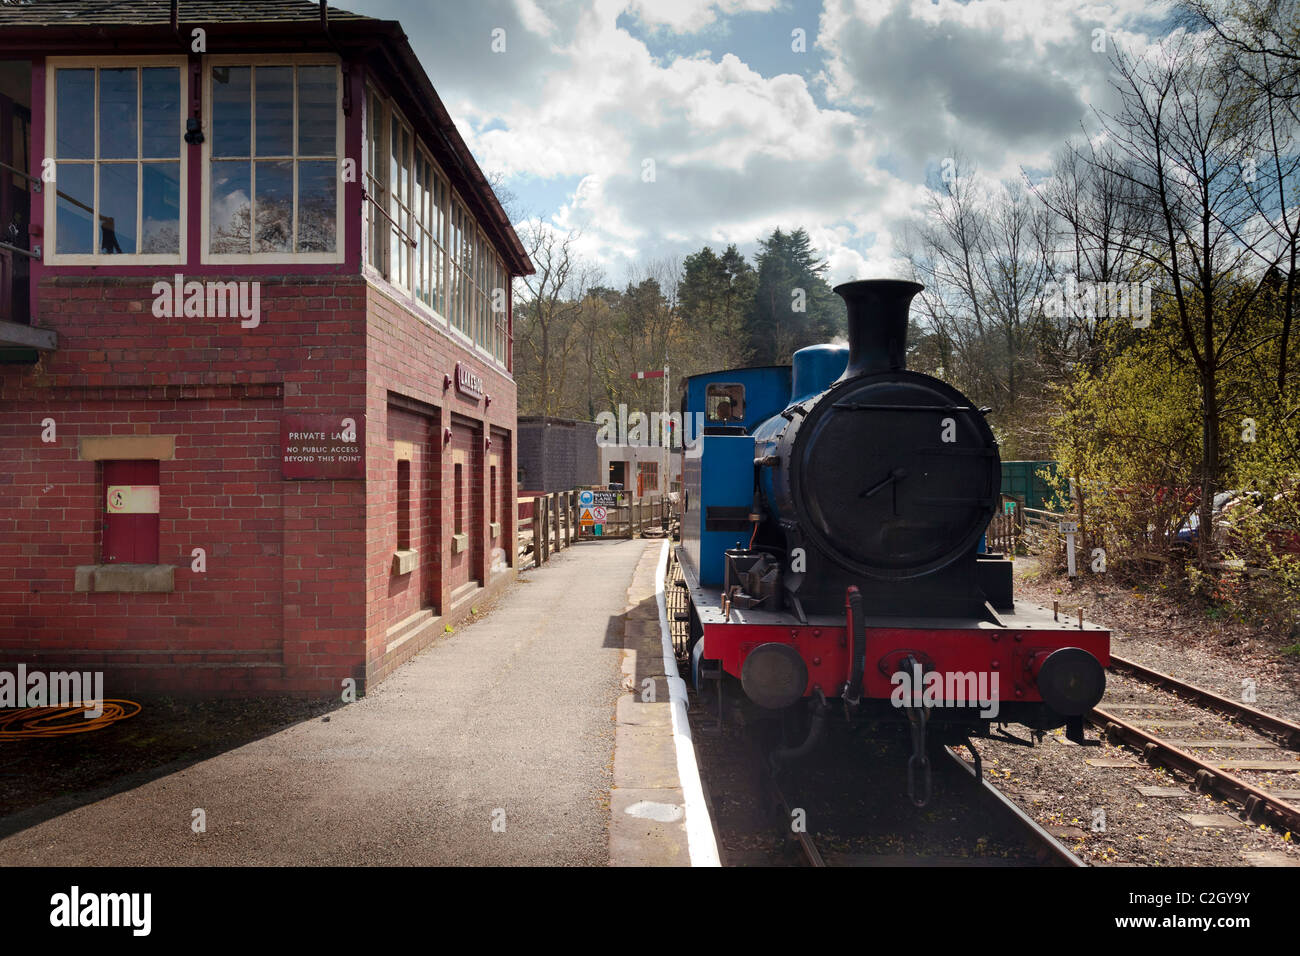 A steam train at Lakeside station on the Lakeside and Haverthwaite railway in the lake district on Windermere. Stock Photo